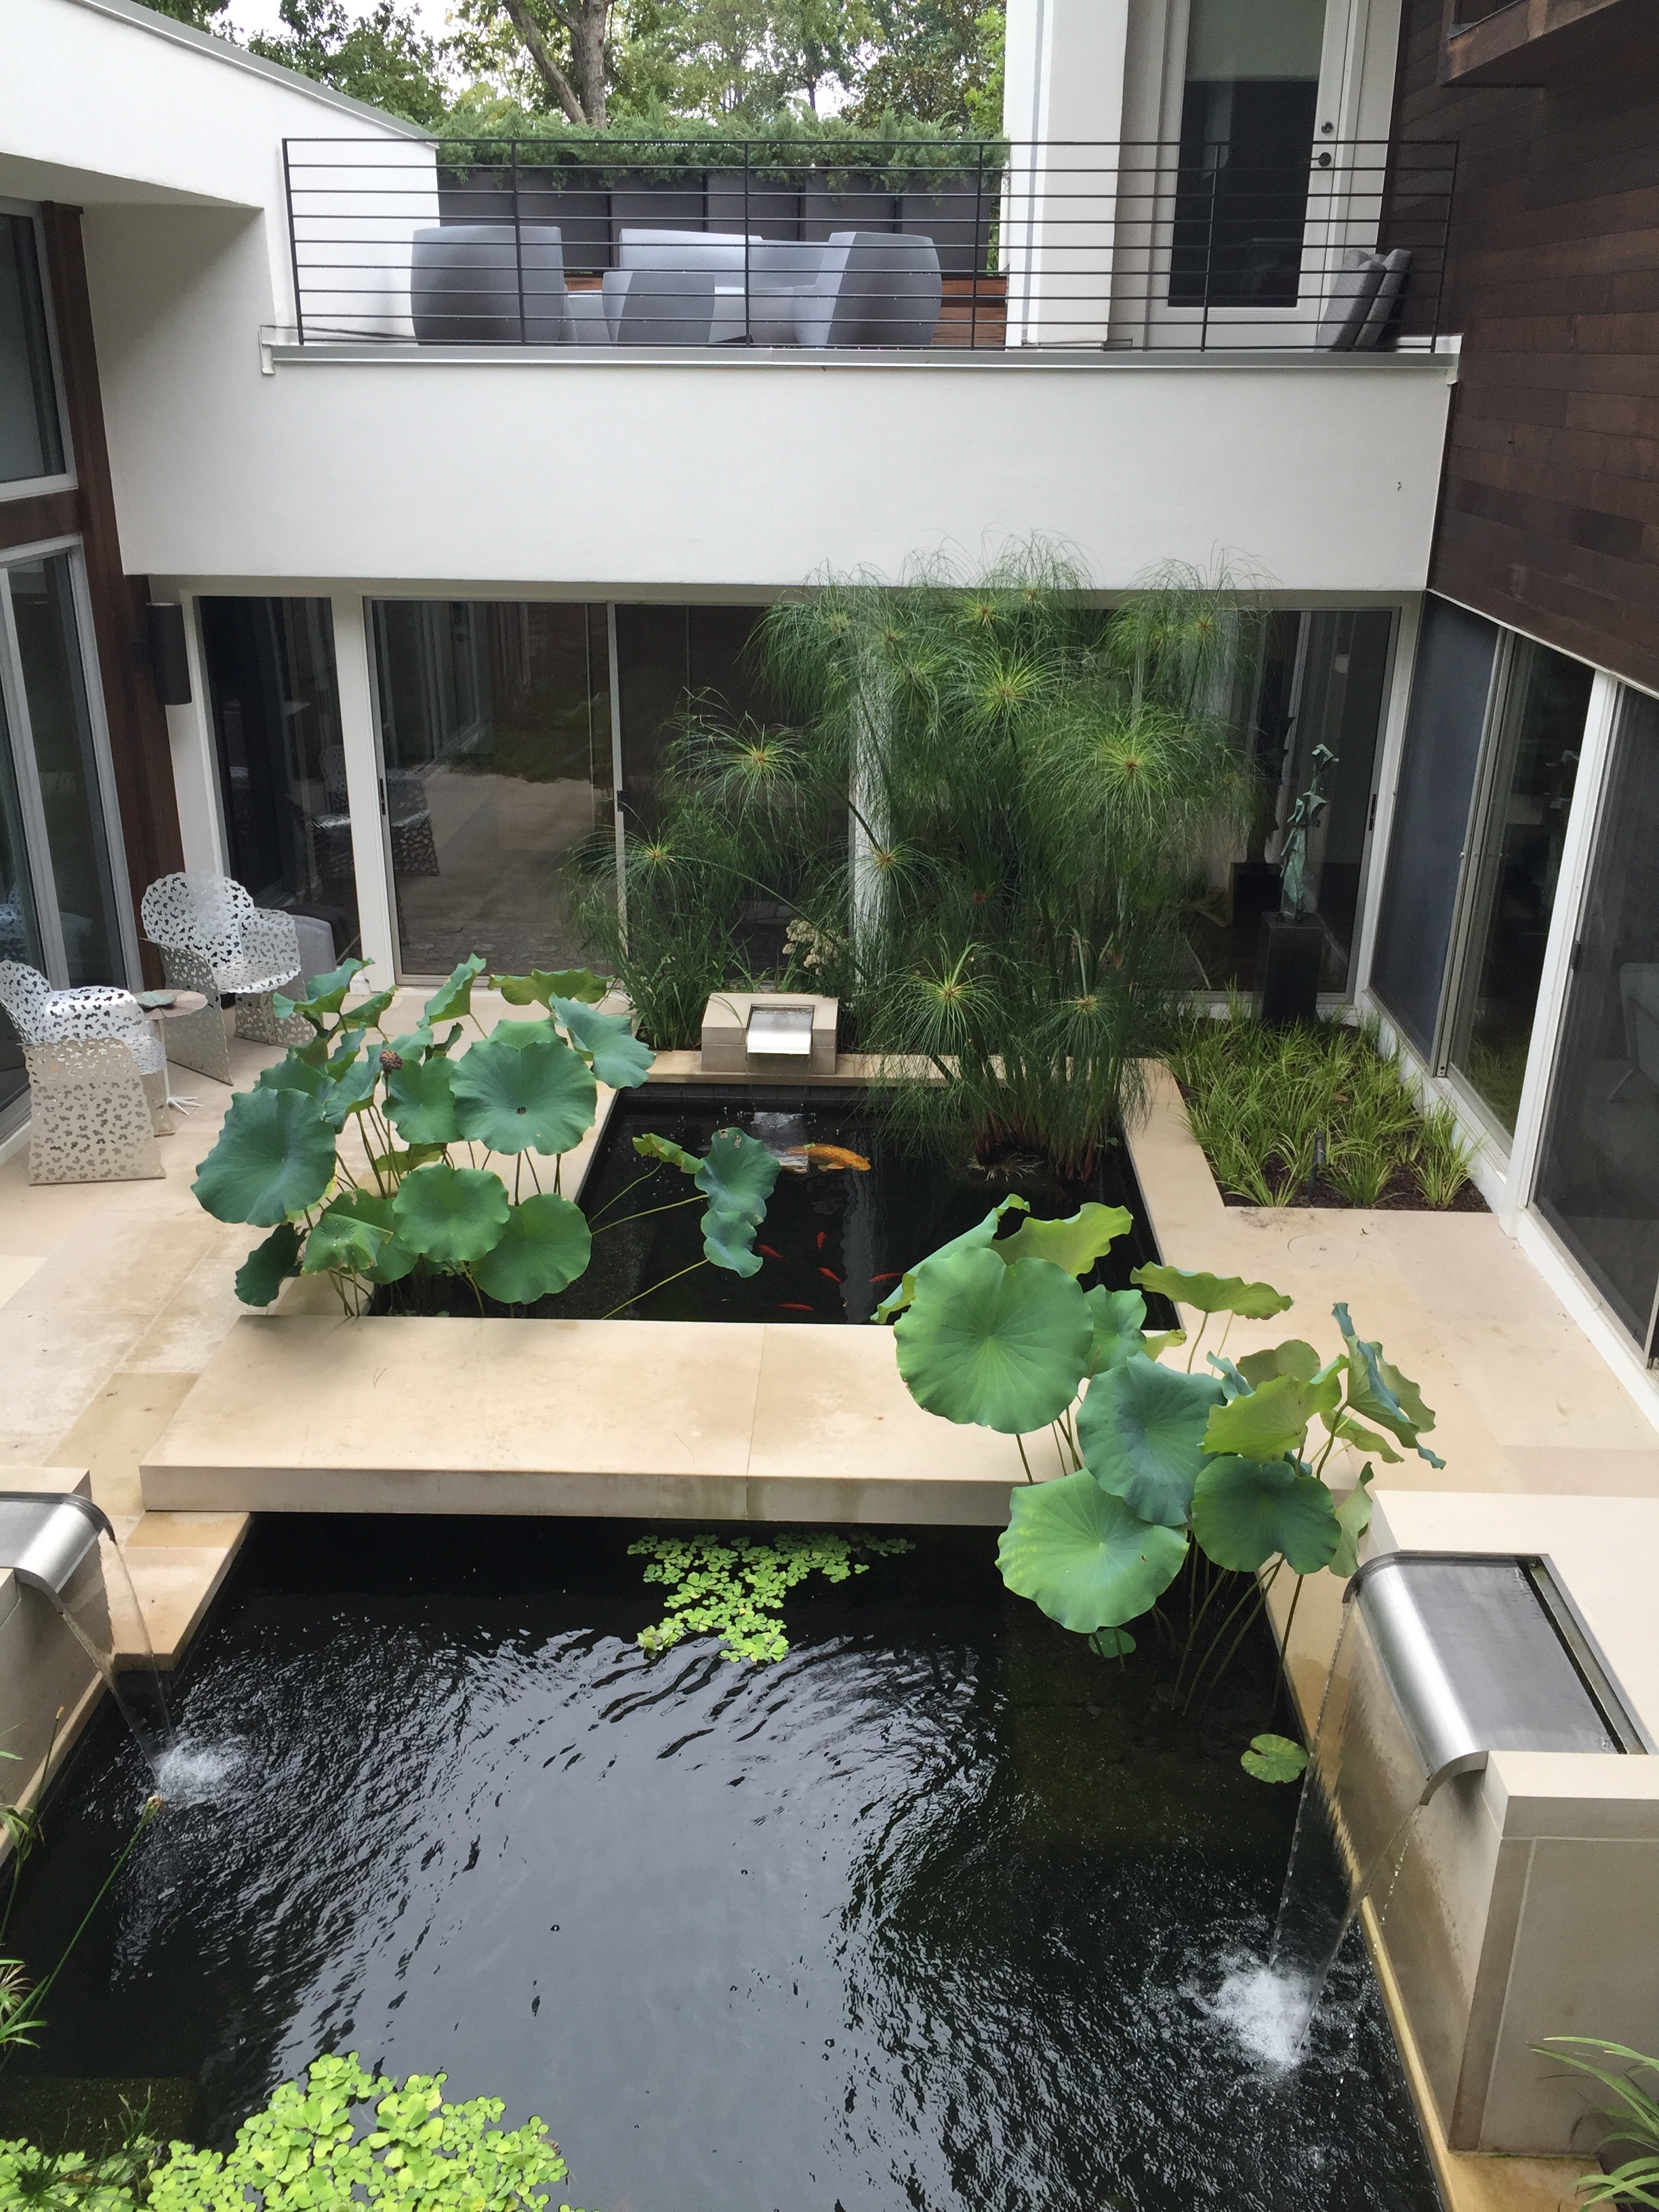 My favorite because I don't get to see many of these, the contemporary garden. Seamless transition between house and garden.